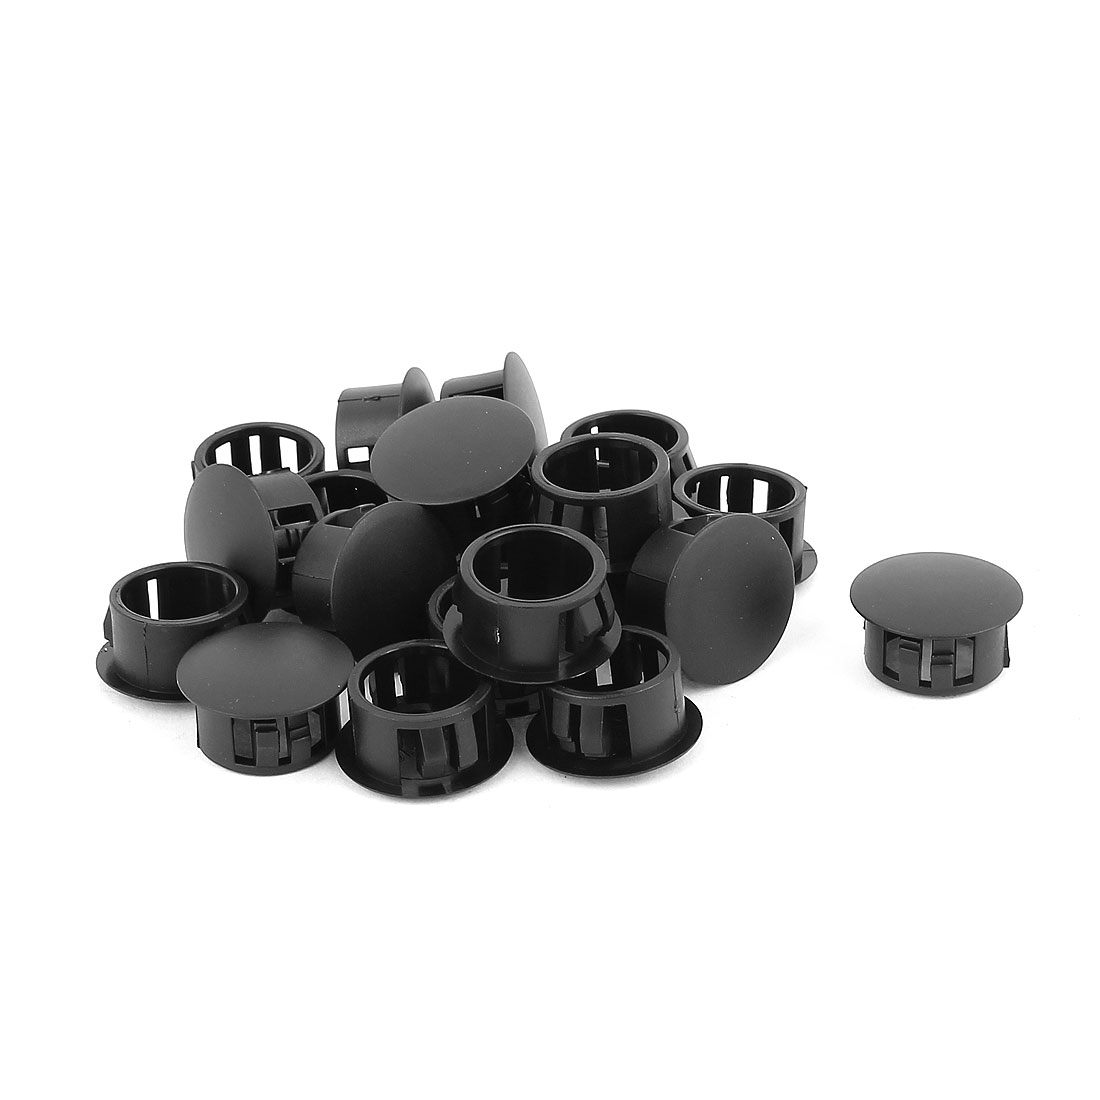 20 Pcs SKT-16 Nylon 16mm Diameter Snap in Type Locking Hole Button Cover